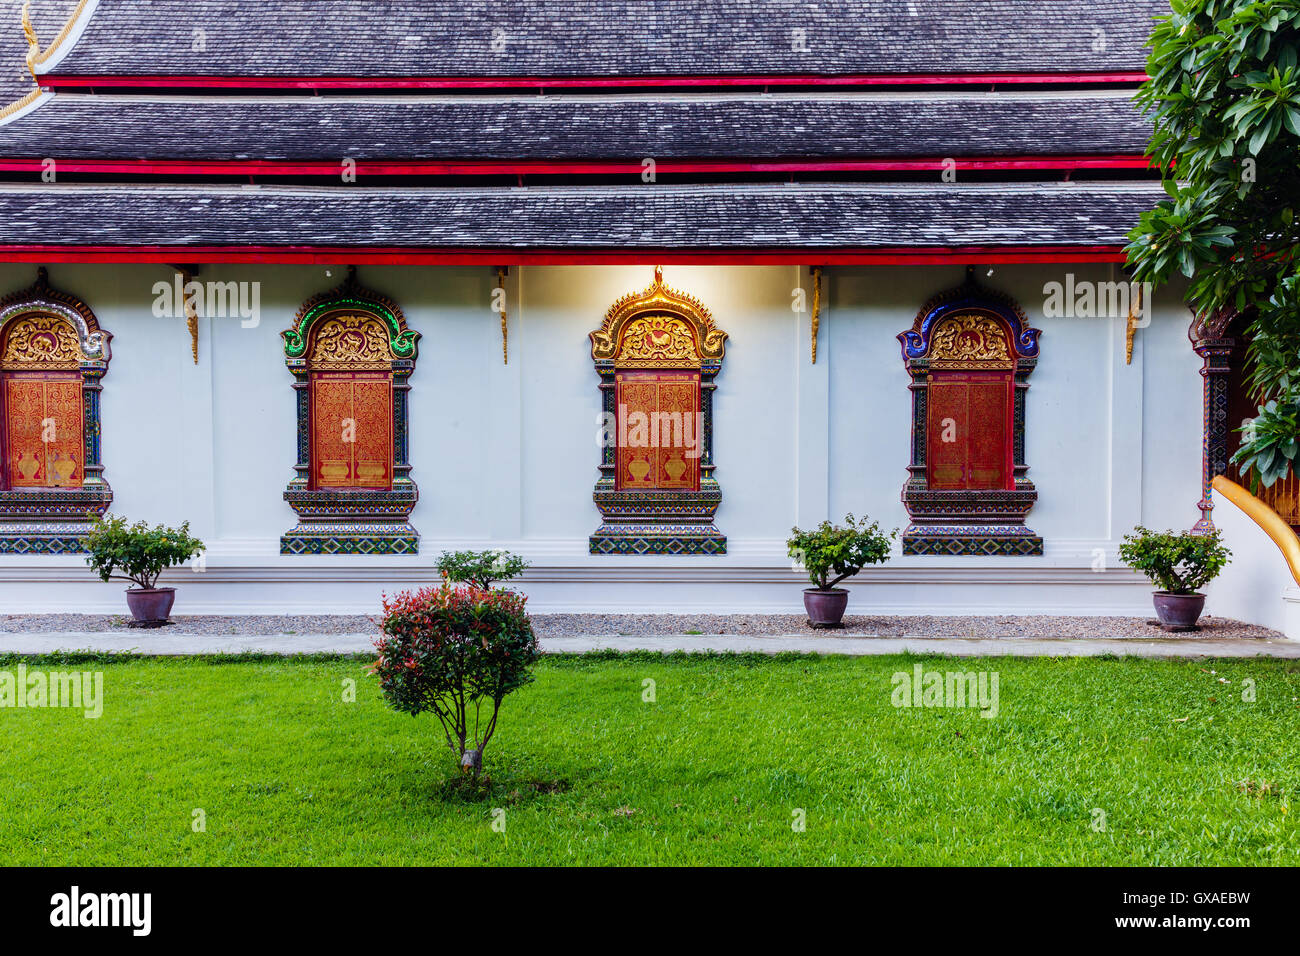 Rchitectural details of Wat Chiang Man, the oldest temple in Chiang Mai, Thailand. - Stock Image